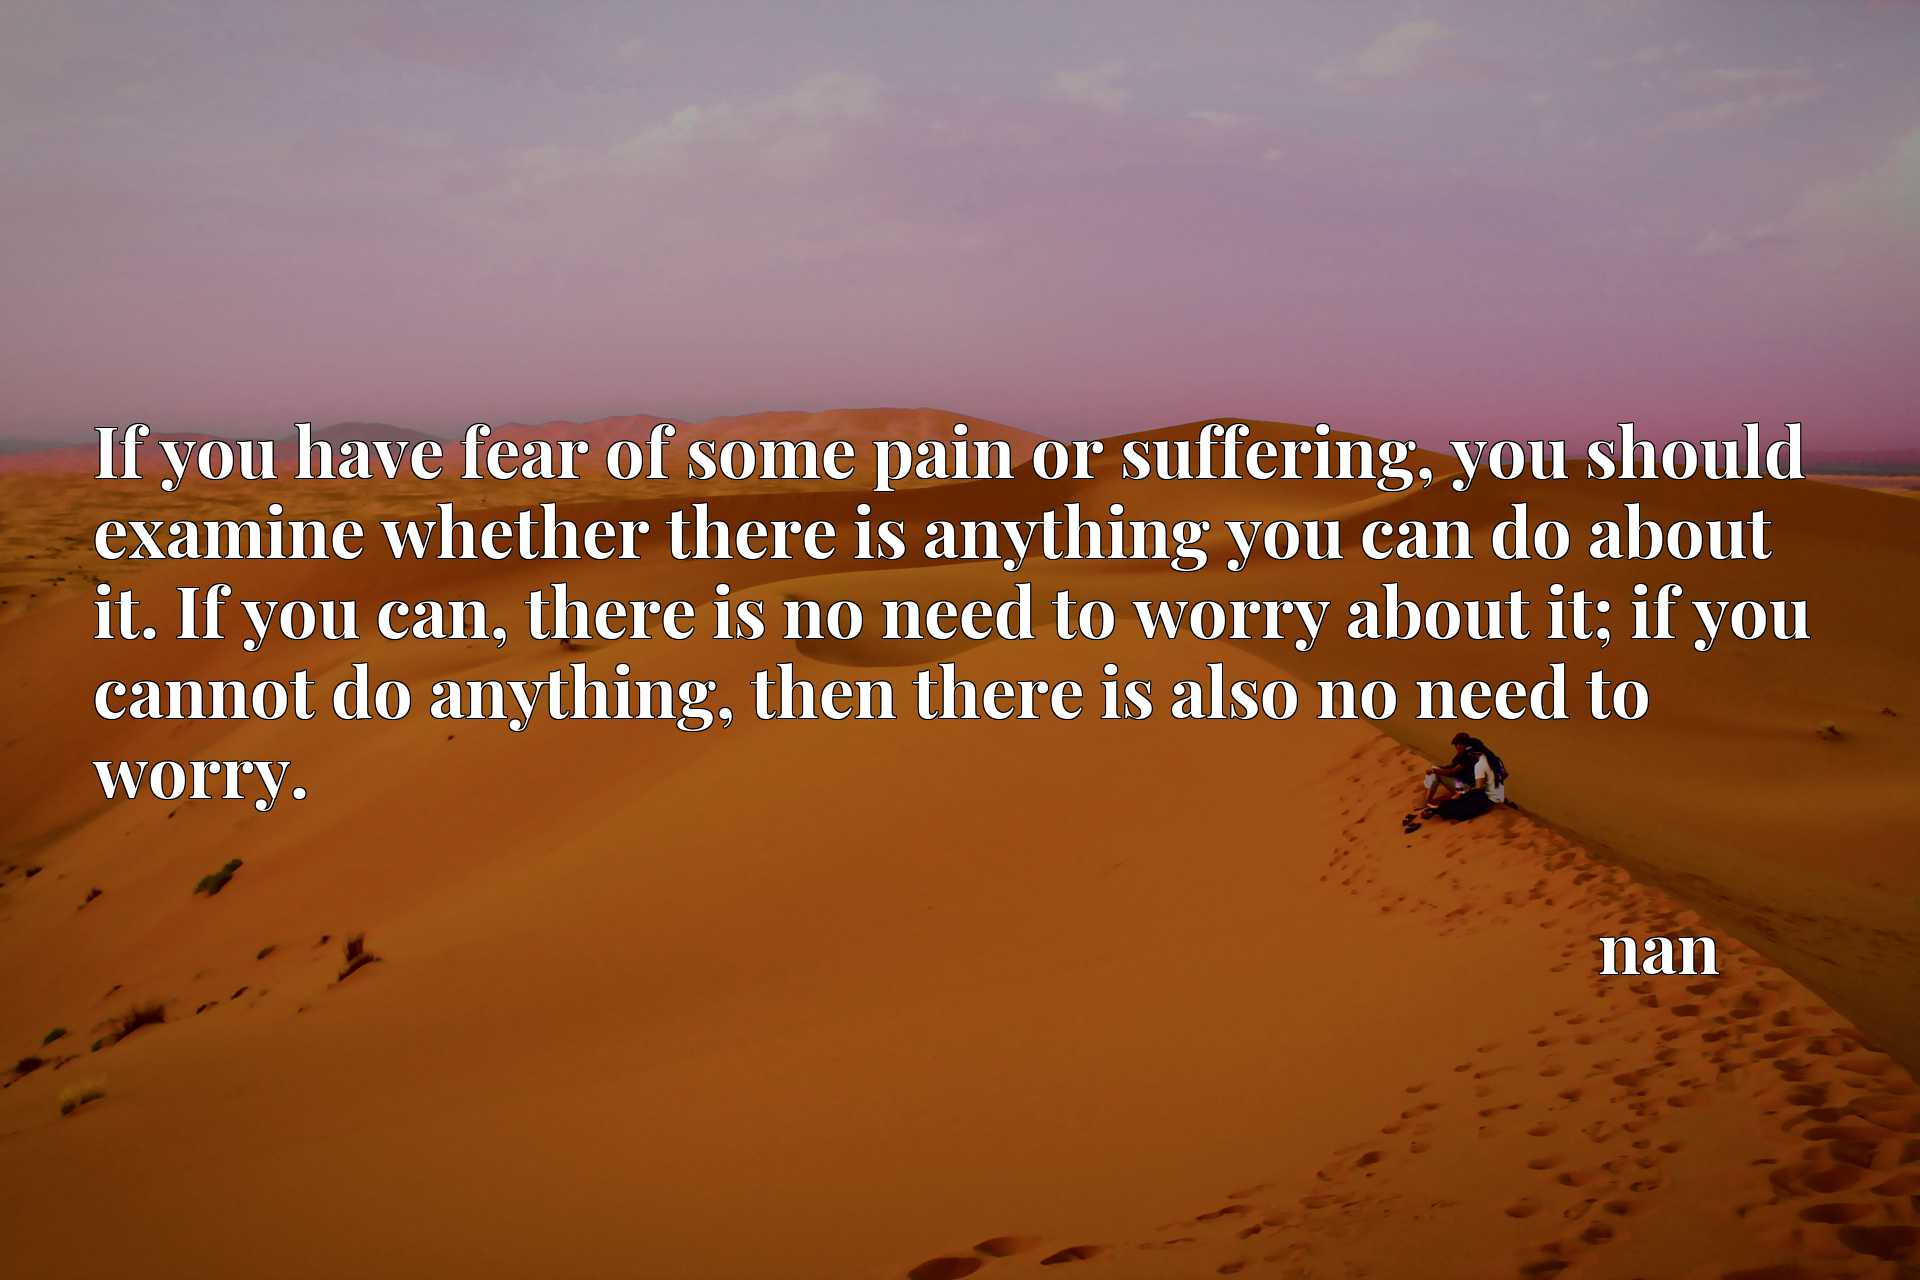 If you have fear of some pain or suffering, you should examine whether there is anything you can do about it. If you can, there is no need to worry about it; if you cannot do anything, then there is also no need to worry.